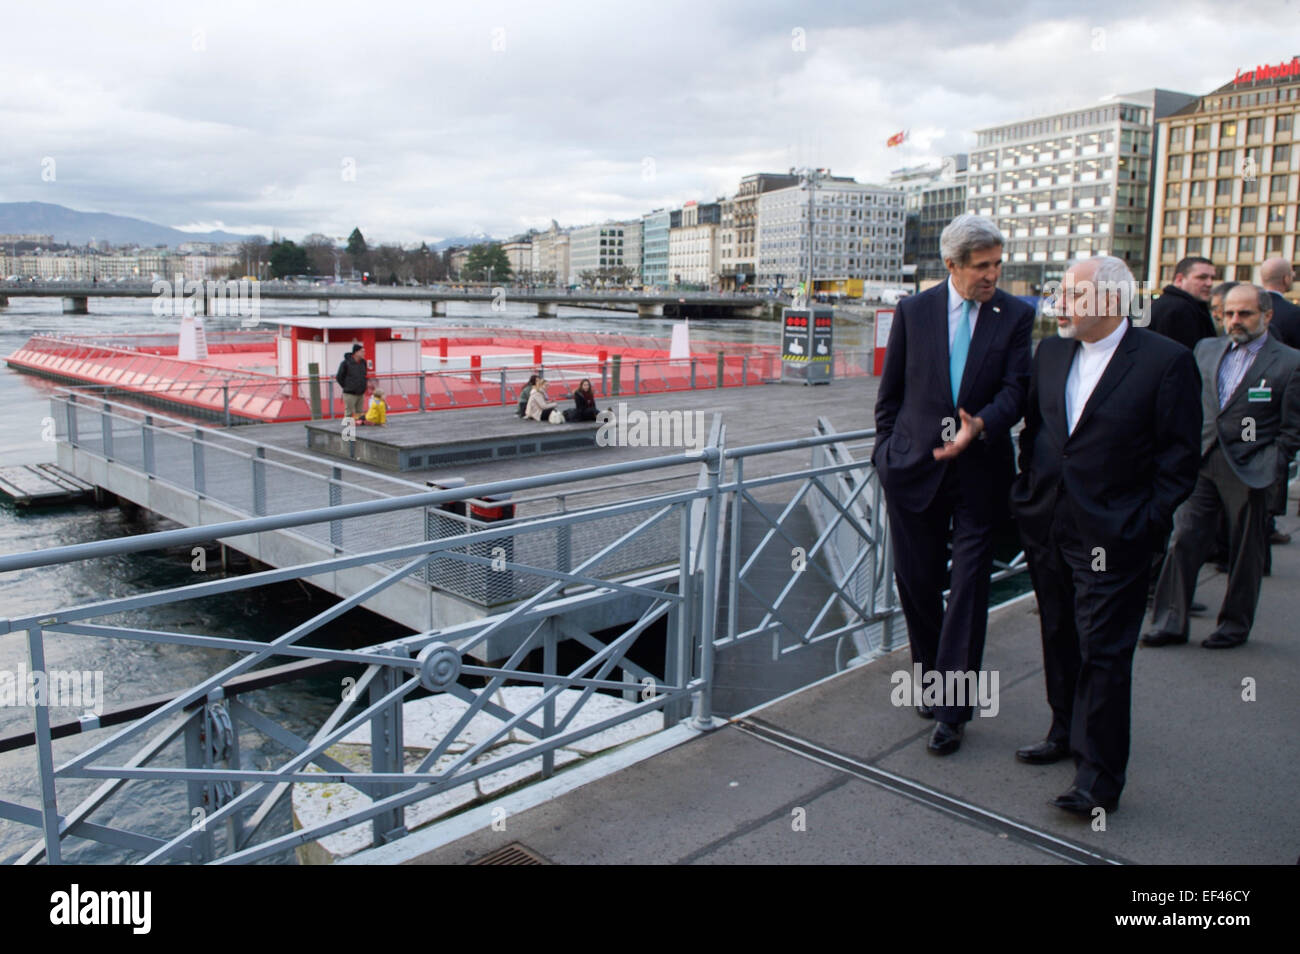 U.S. Secretary of State John Kerry and Iranian Foreign Minister Javad Zarif chat as they cross the Rhone River on - Stock Image